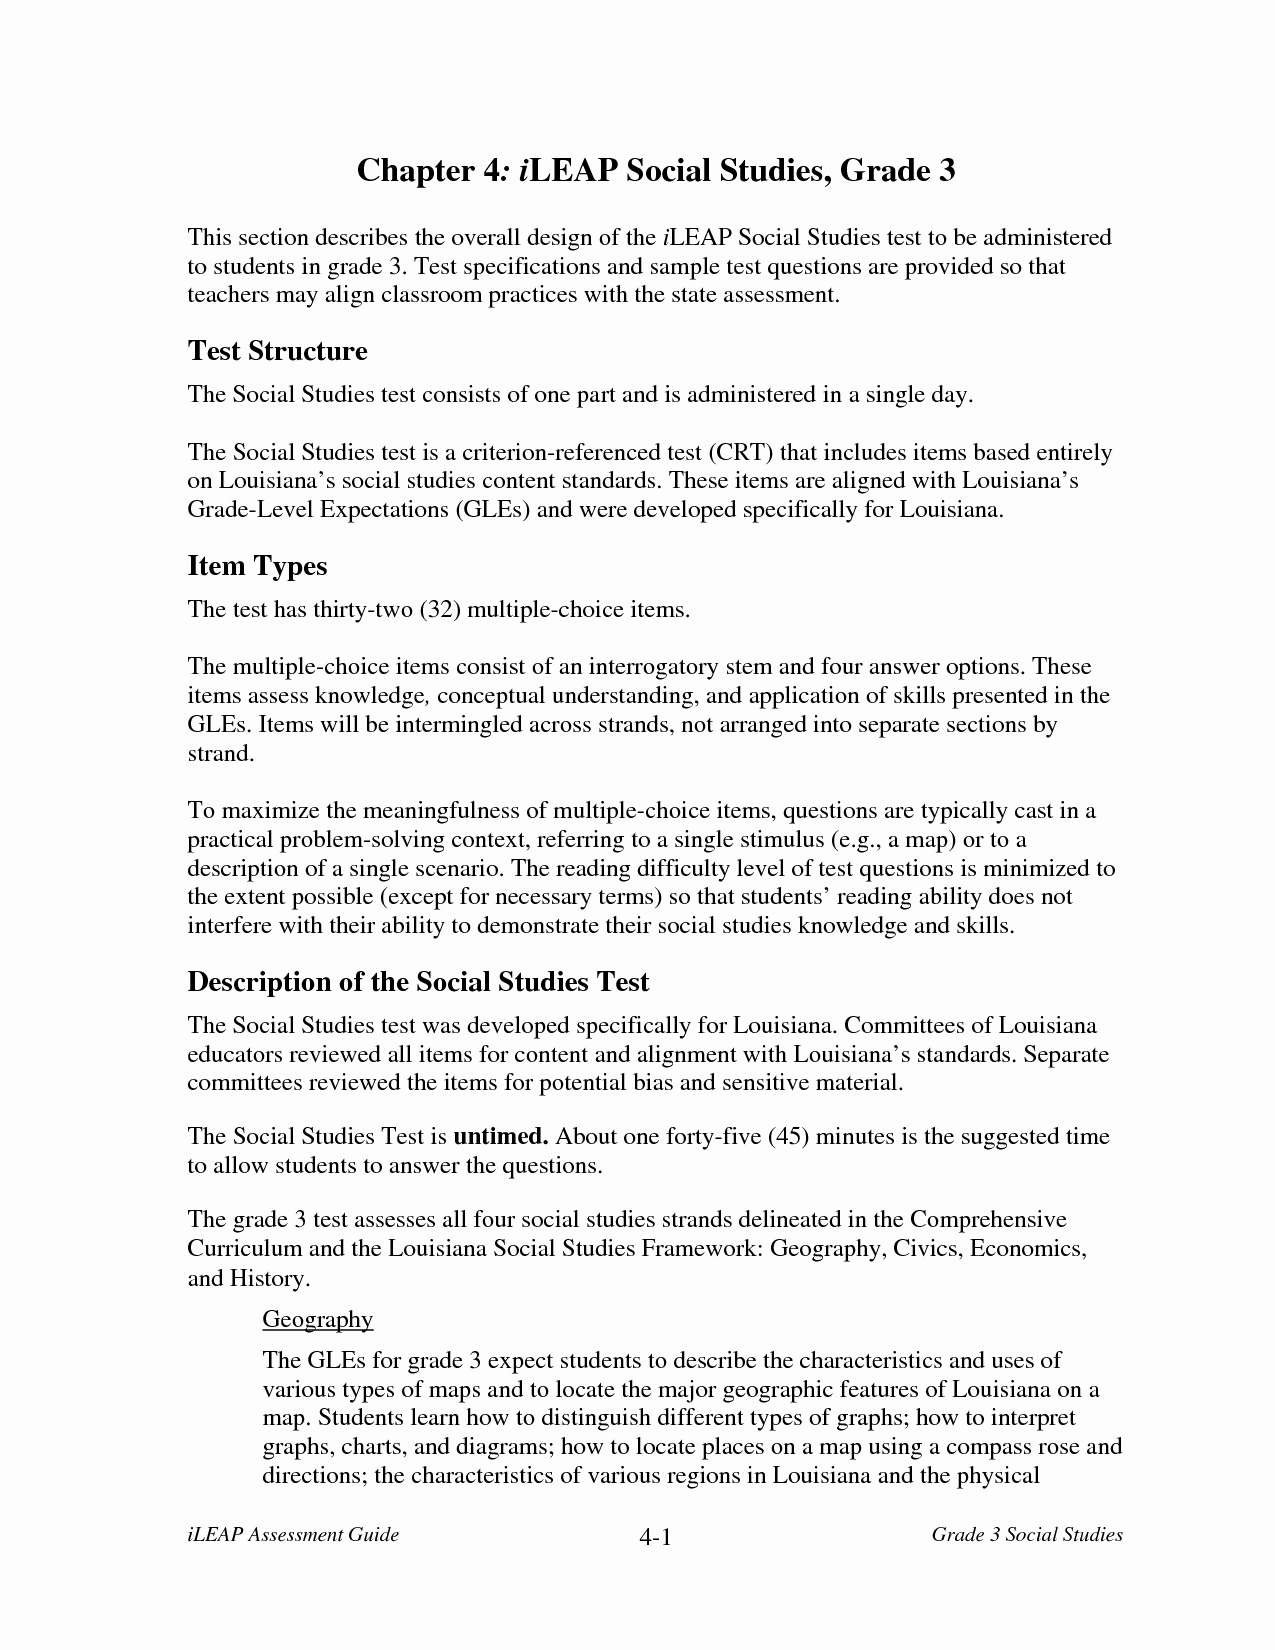 3rd Grade social Studies Worksheet Lovely 3rd Grade Worksheet Category Page 1 Worksheeto